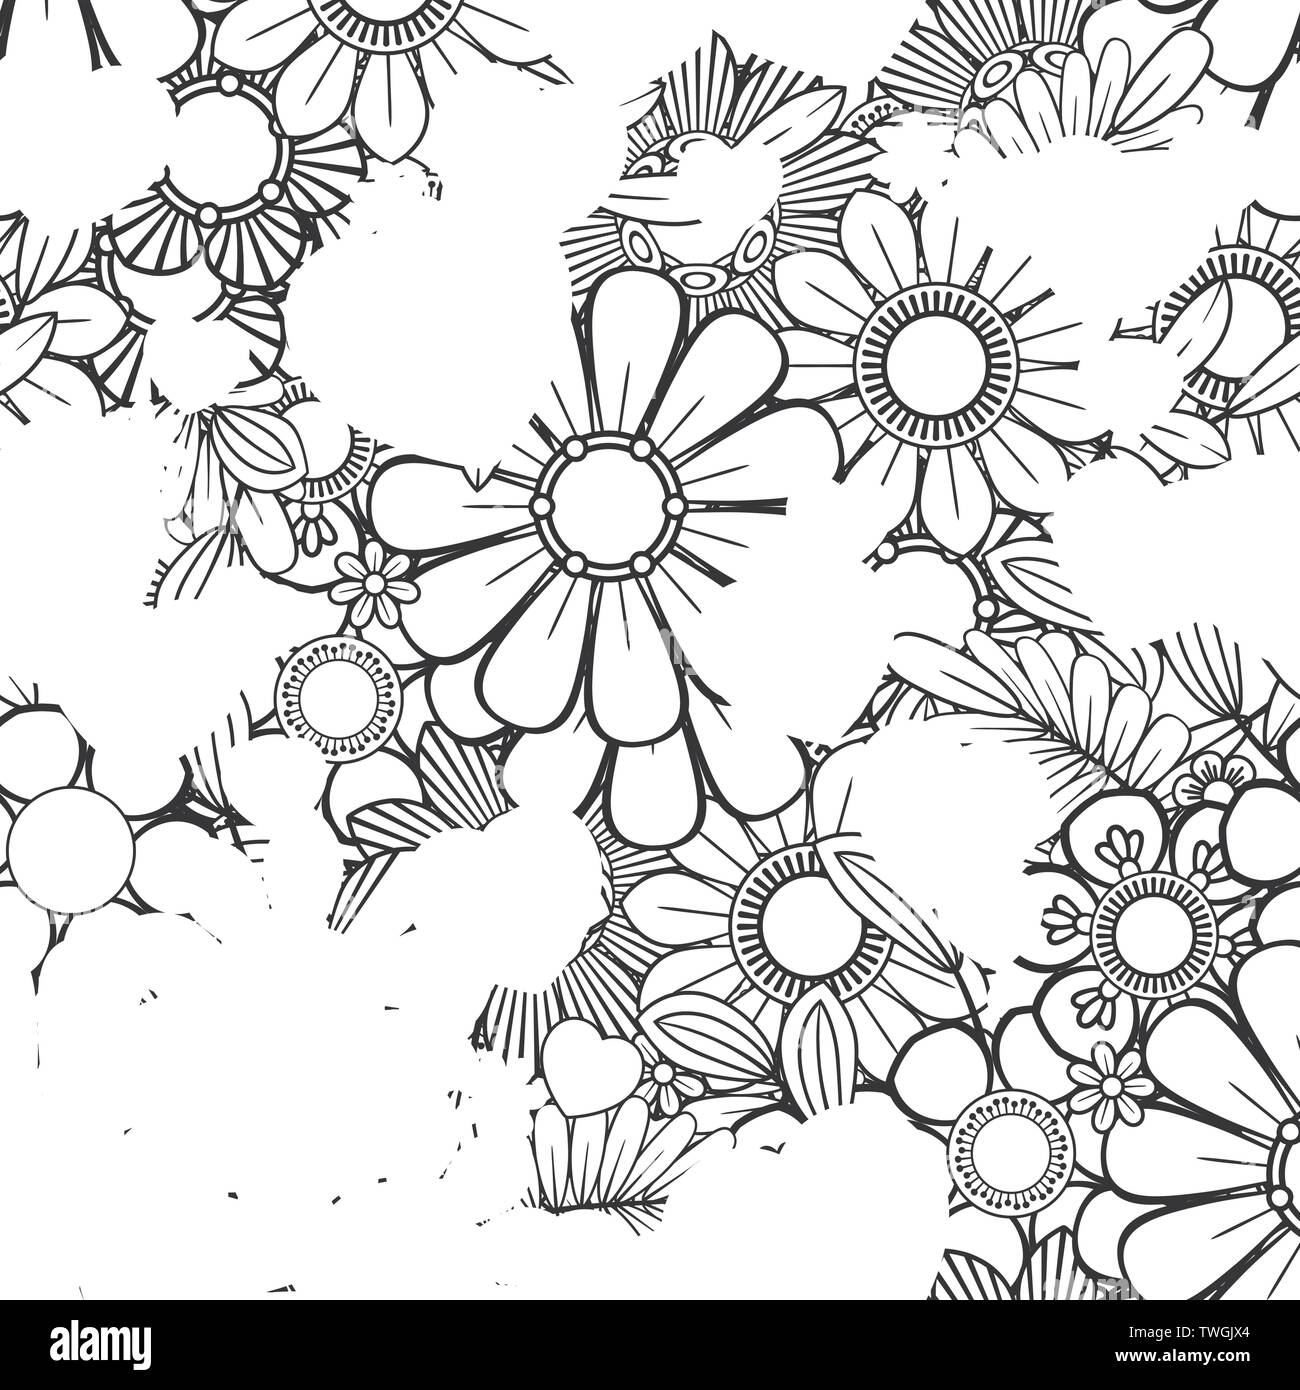 Printable Happy Valentine's Day Flowers Coloring Page for Kids ... | 1390x1300